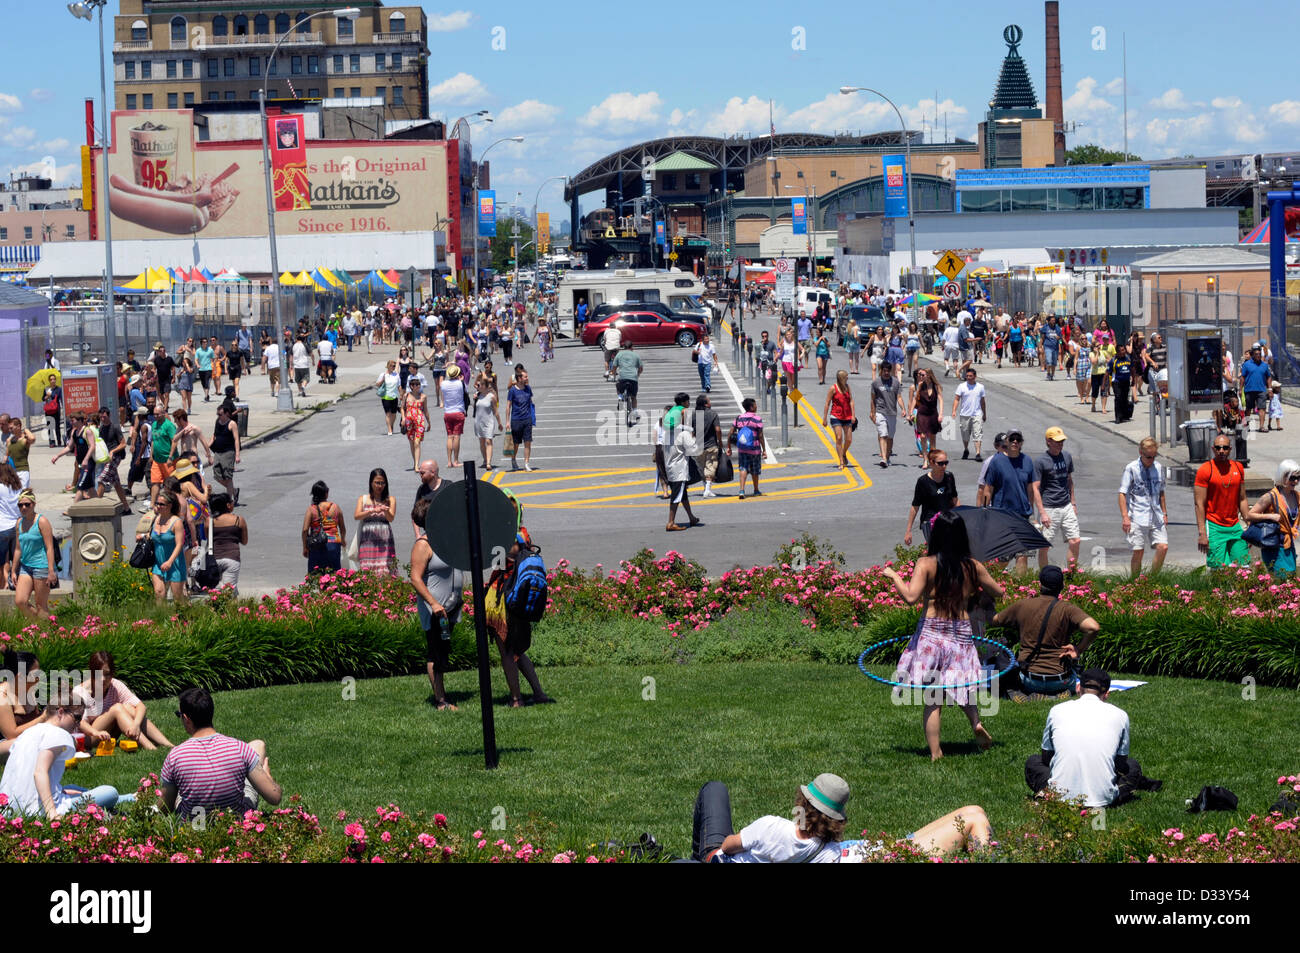 Crowds pour into Coney Island on a hot summer's day in New York City, America. Stock Photo